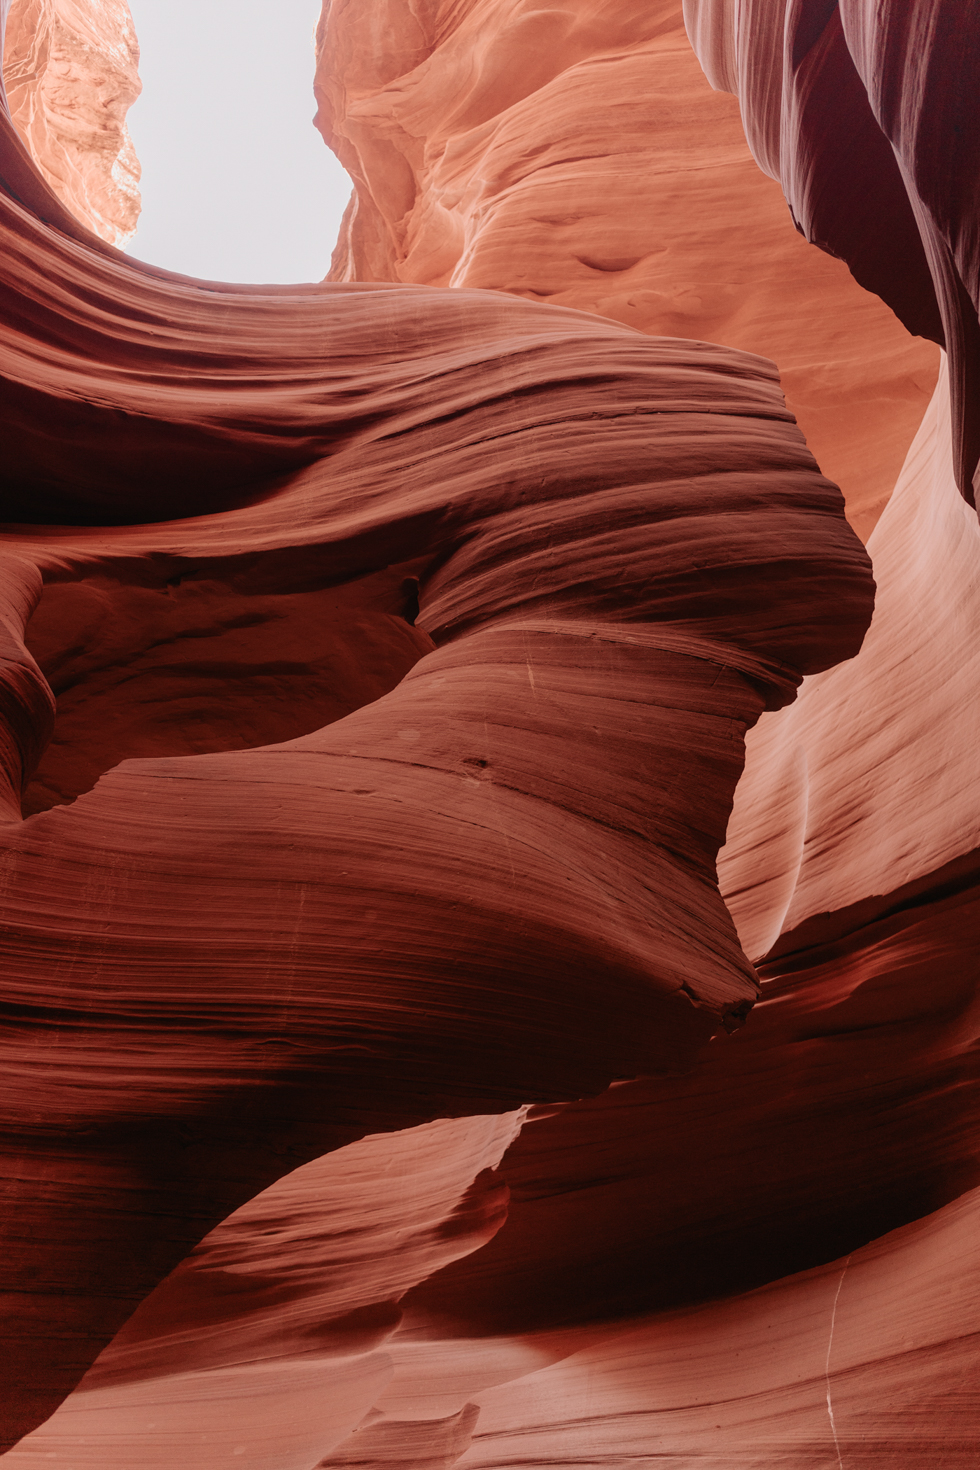 Lower Antelope Canyon - The ultimate 7-day Southwest road-trip #RoadTrip #USA - Day by day itinerary and the best parks to visit in Utah, Nevada, and Arizona